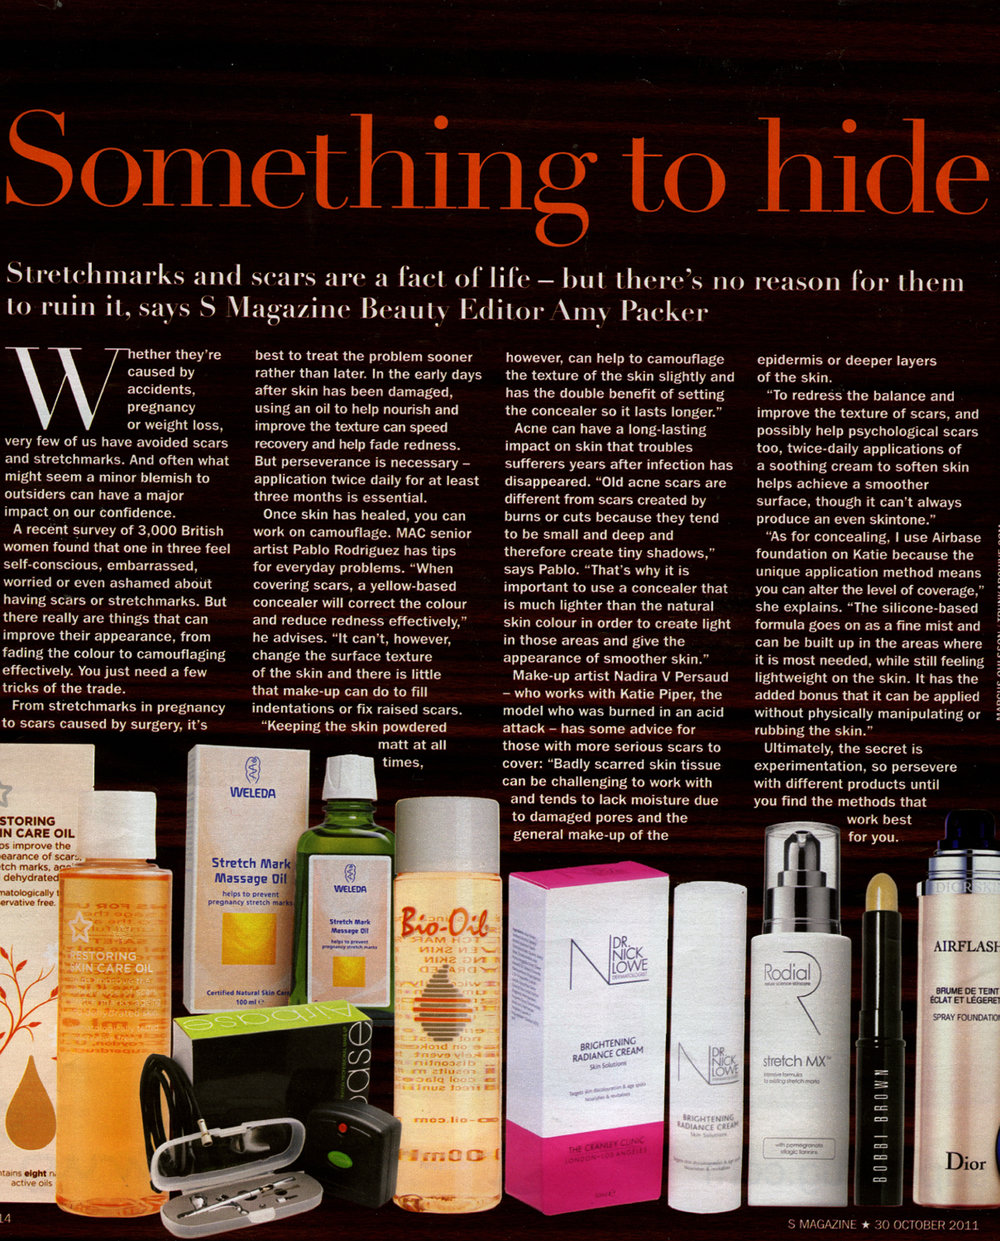 Sunday Express, S Magazine, Scars Coverage